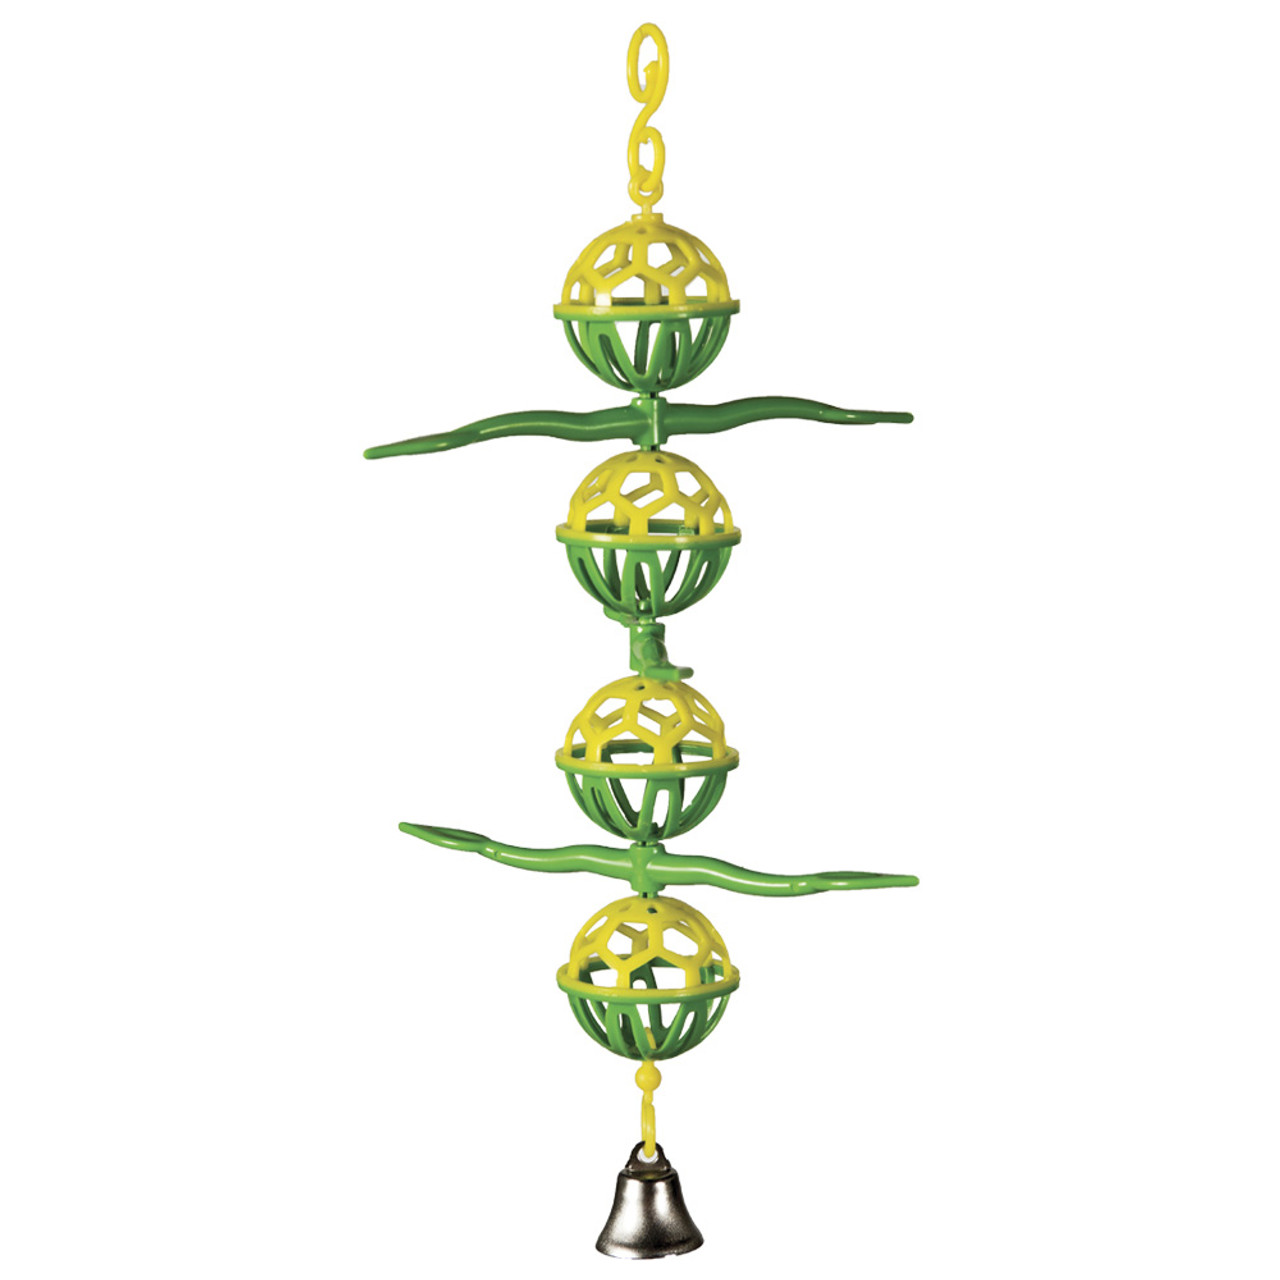 Featherland Paradise Lattice Ball With Perch and Bell Bird Toy